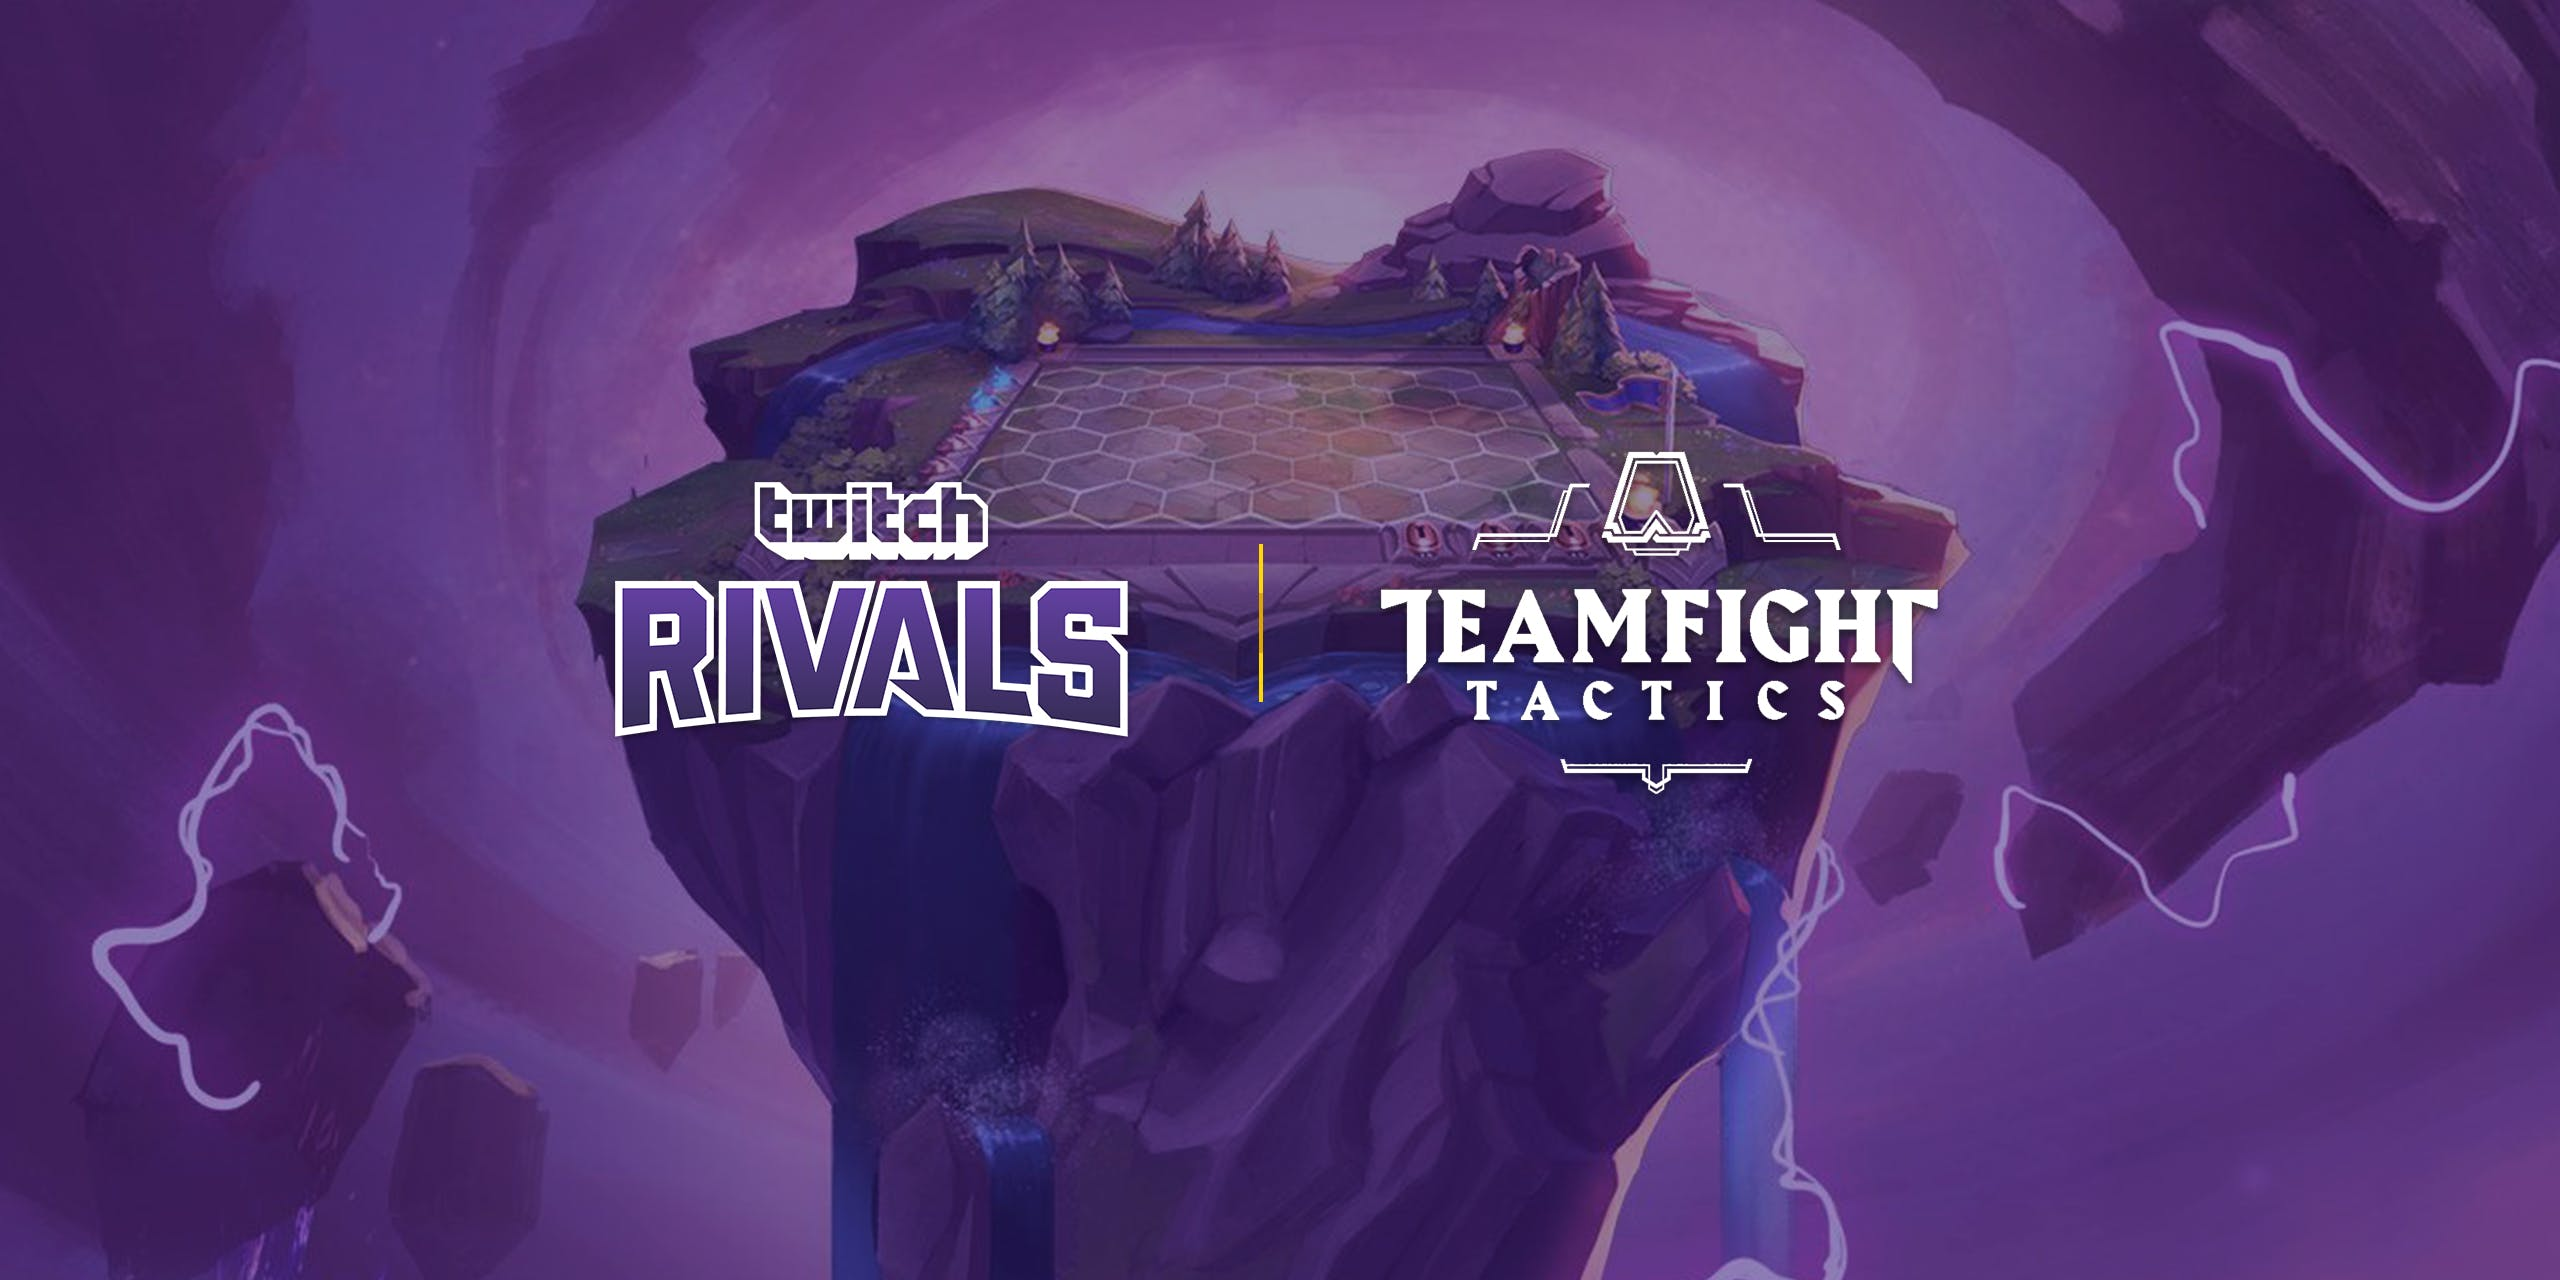 Twitch Rivals TFT Road to TwitchCon | Scores, Standings, and